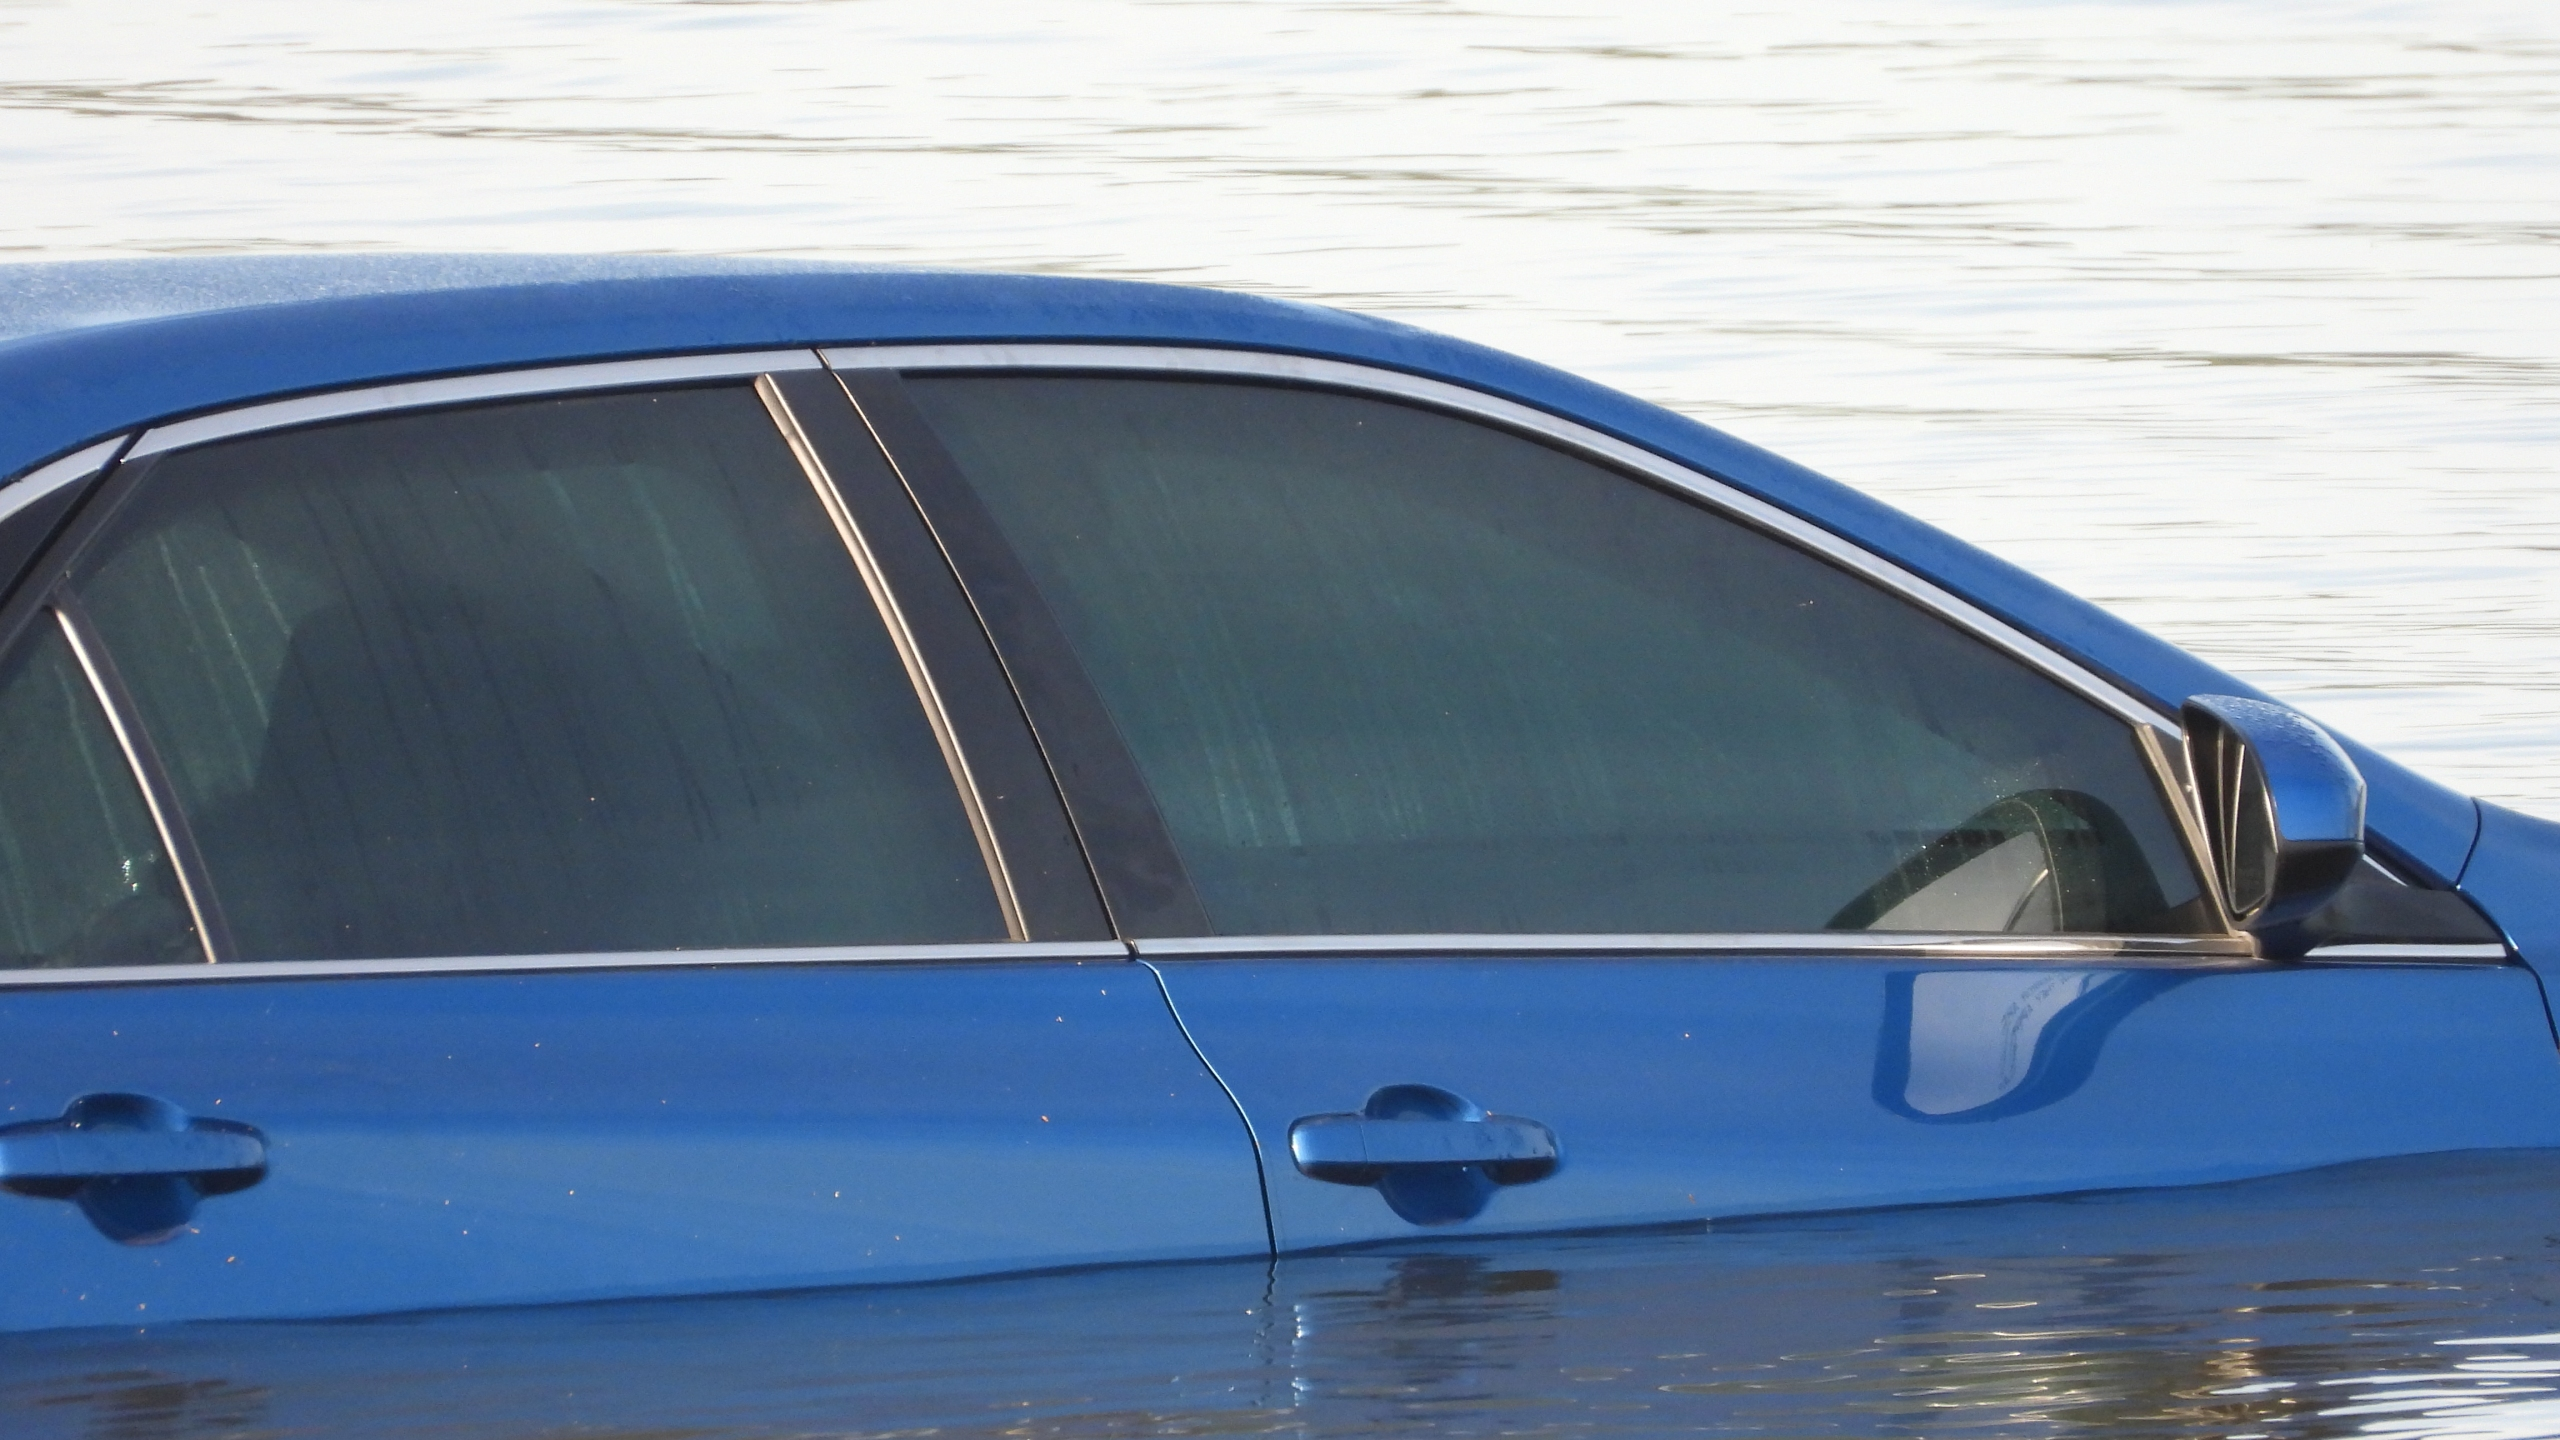 Car pulled from Lake Eufaula with three dead bodies